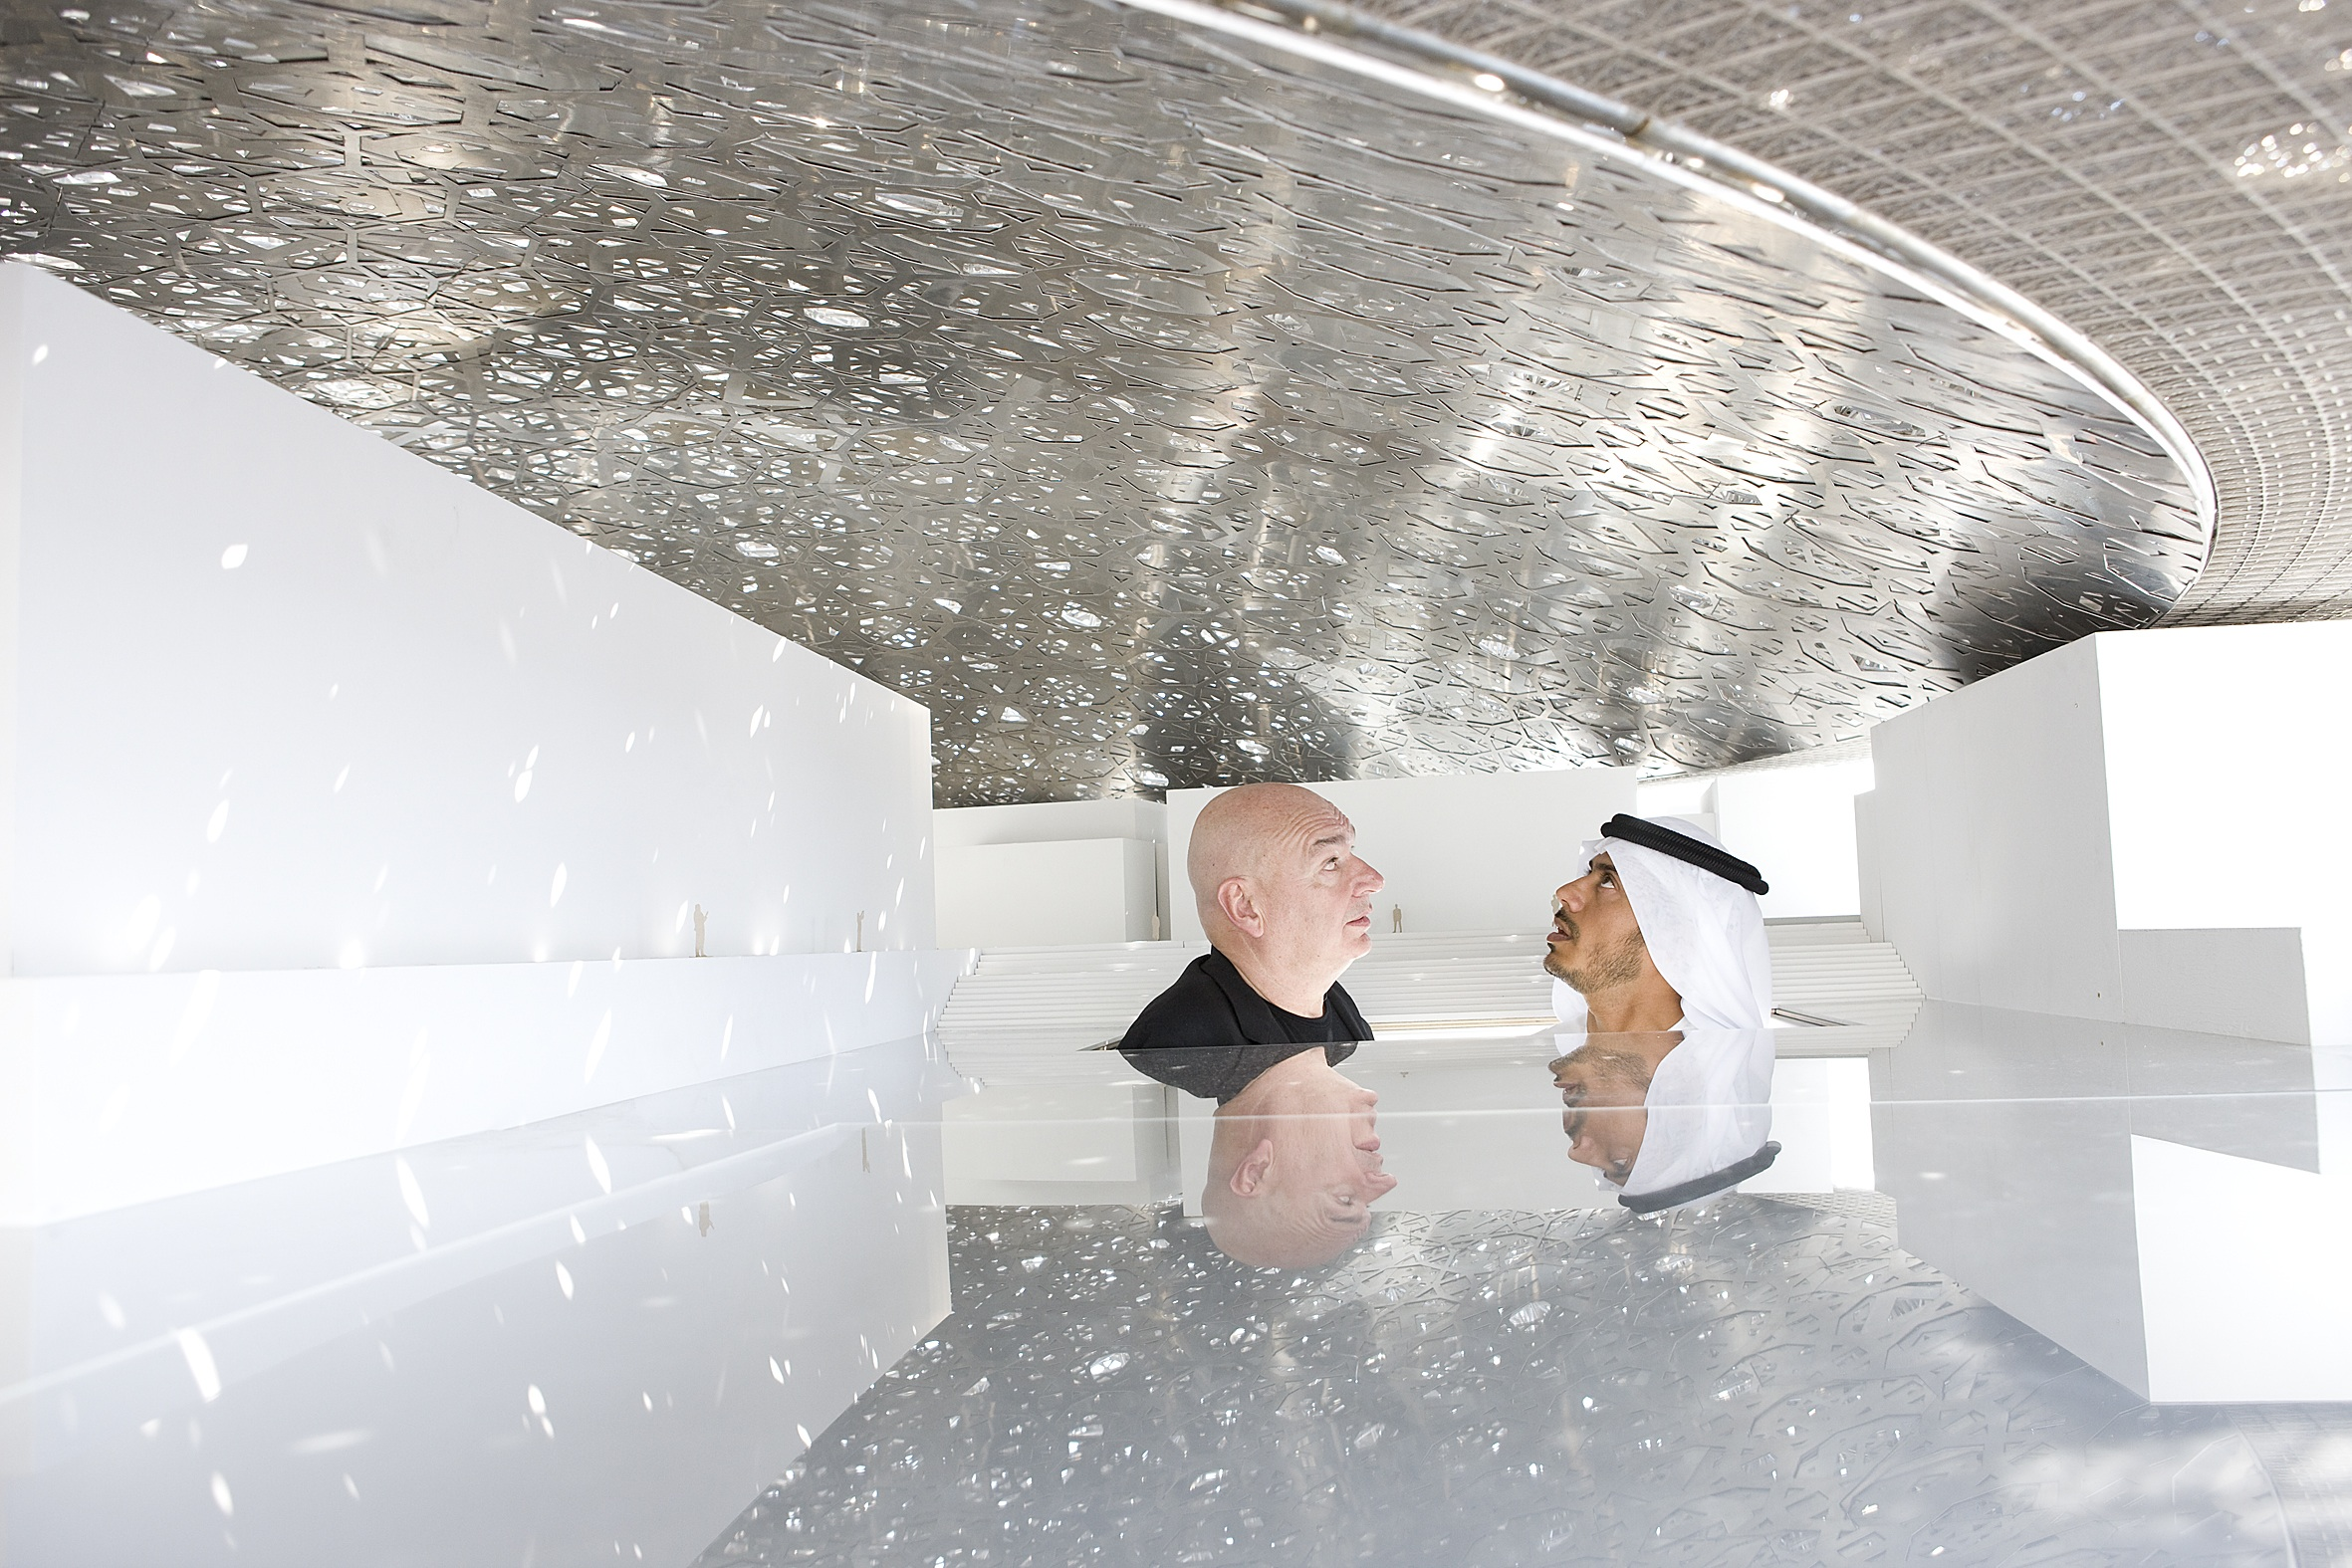 jean_nouvel_and_he_sheikh_sultan_-_under_mock_up_dome_1